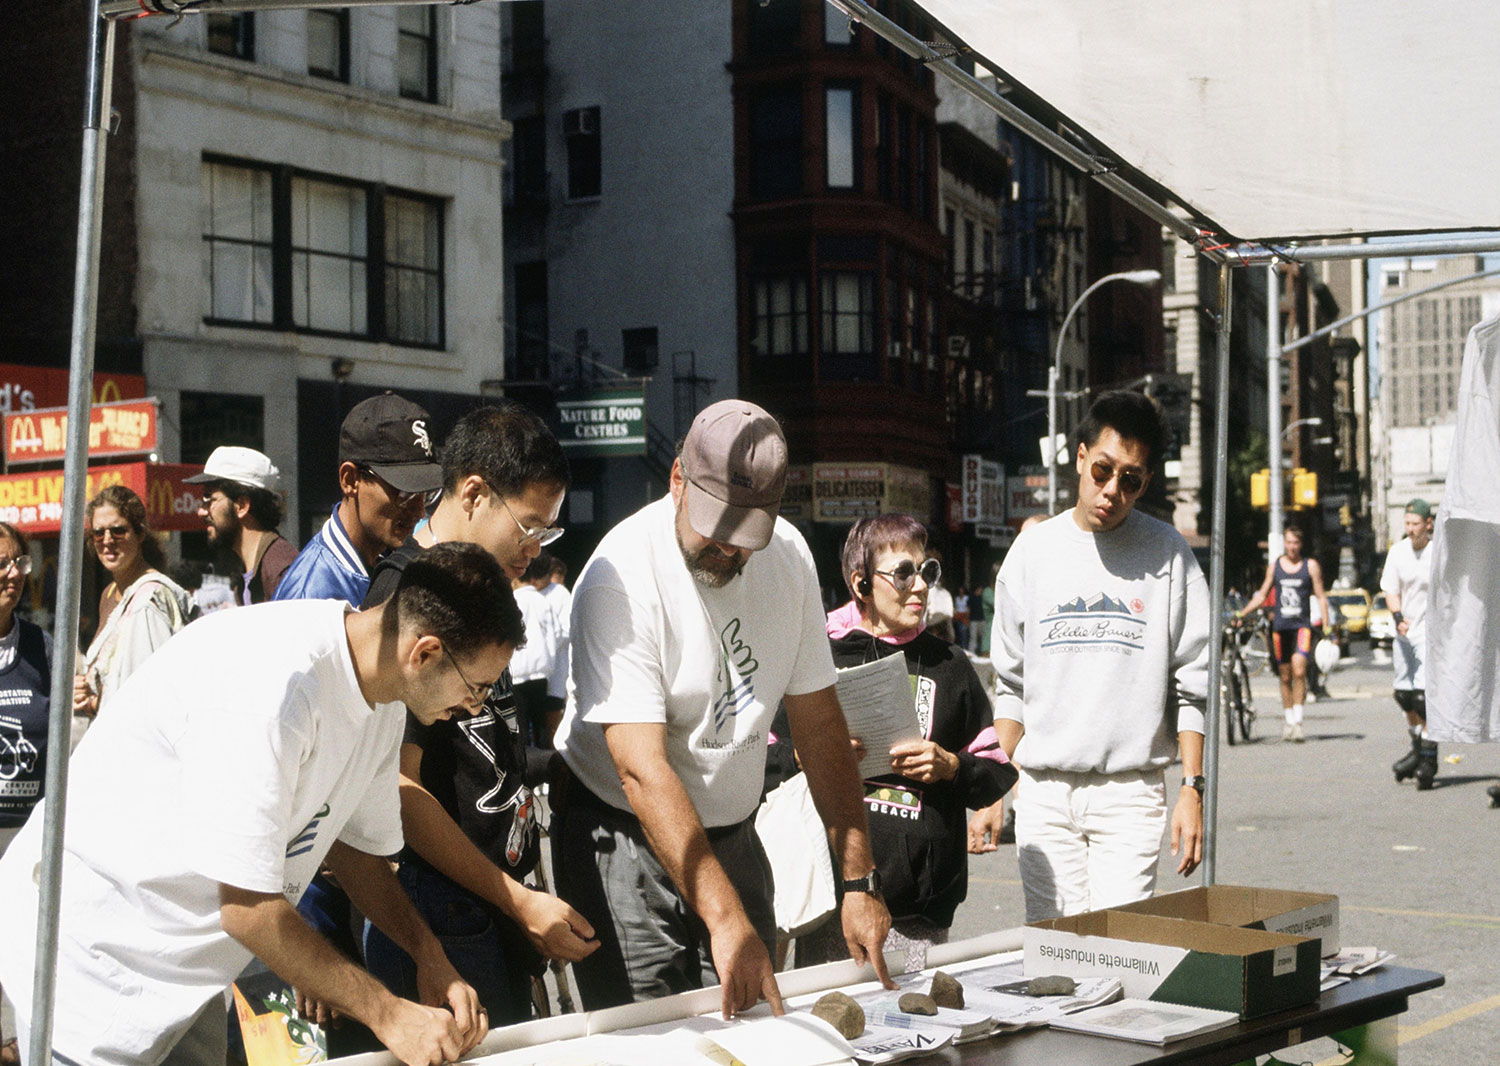 Public Planning For HRP At Union Square Greenmarket 1994